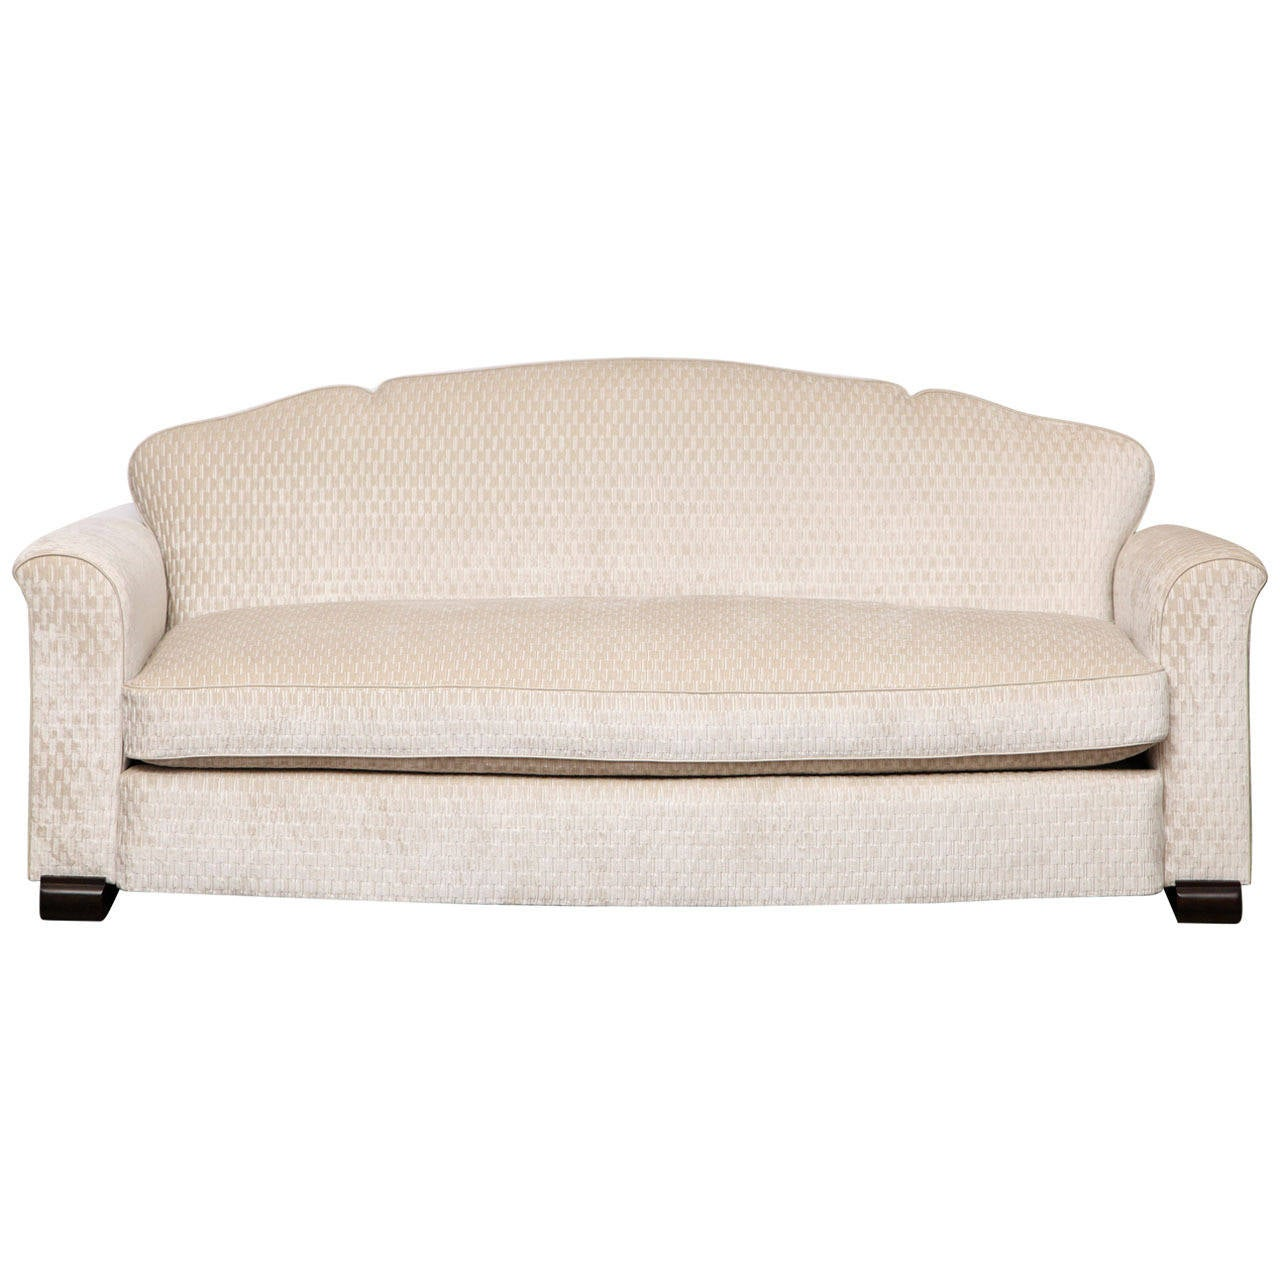 fine art deco sofa by jules leleu at 1stdibs. Black Bedroom Furniture Sets. Home Design Ideas